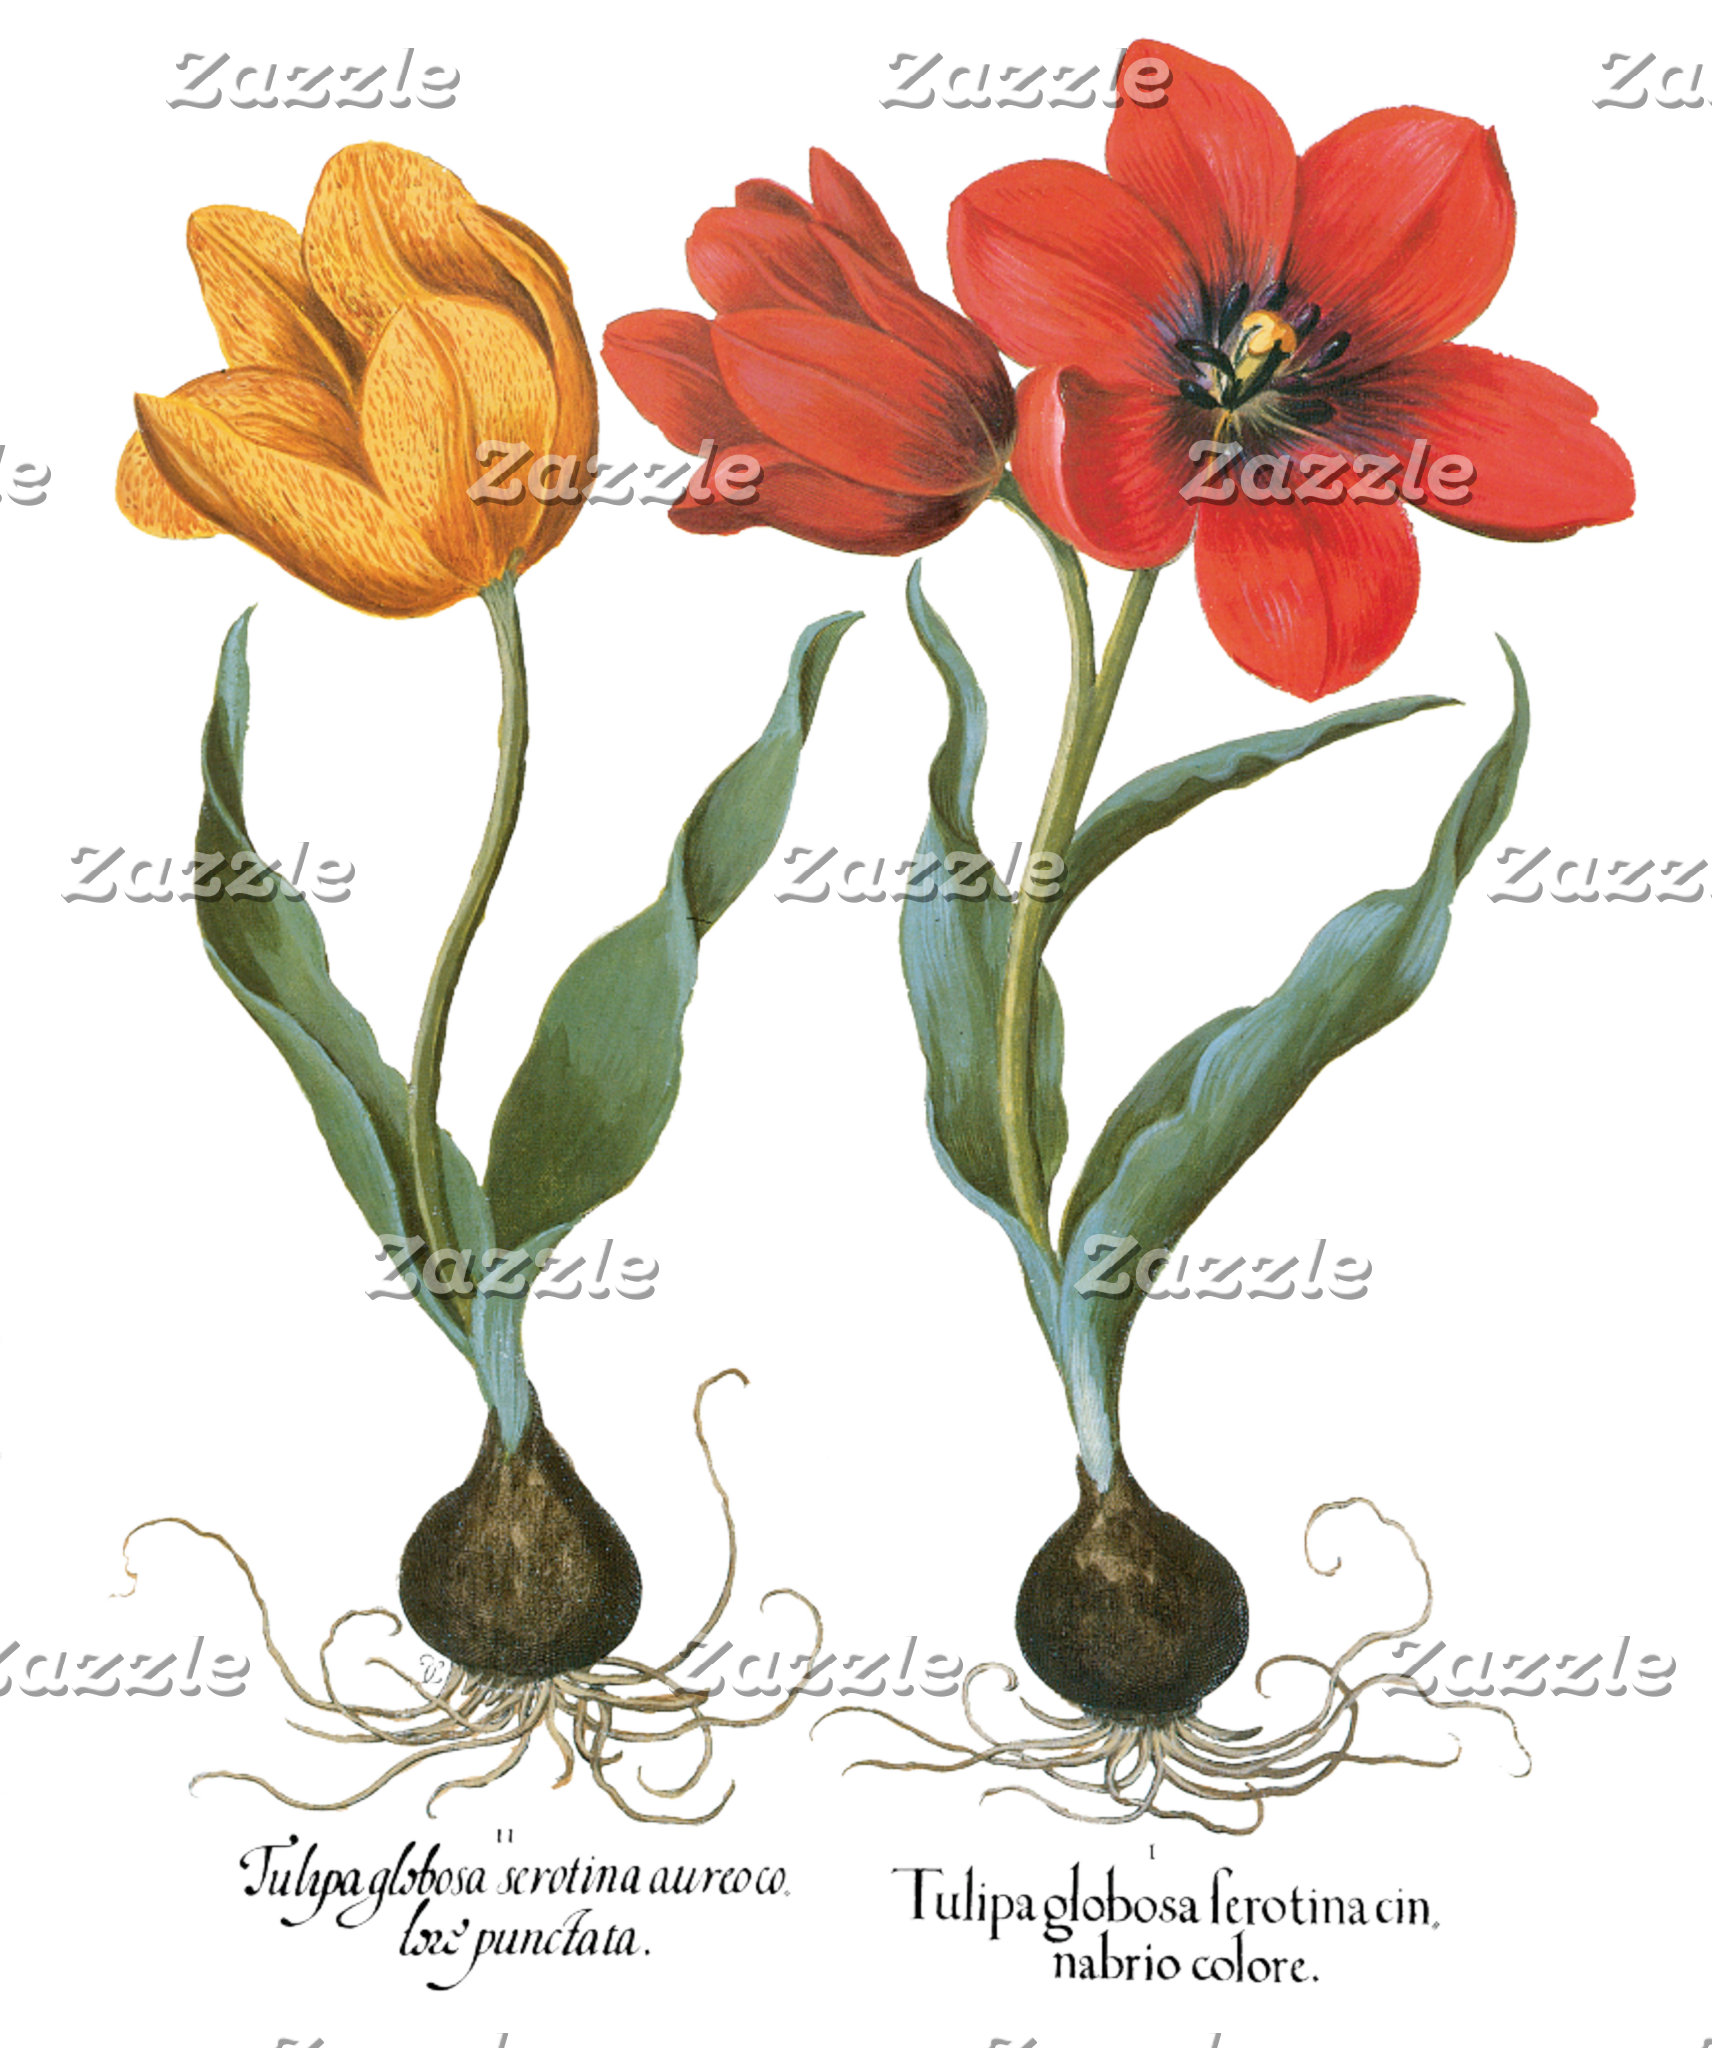 Botanical Art, Flowers and Garden Scenes